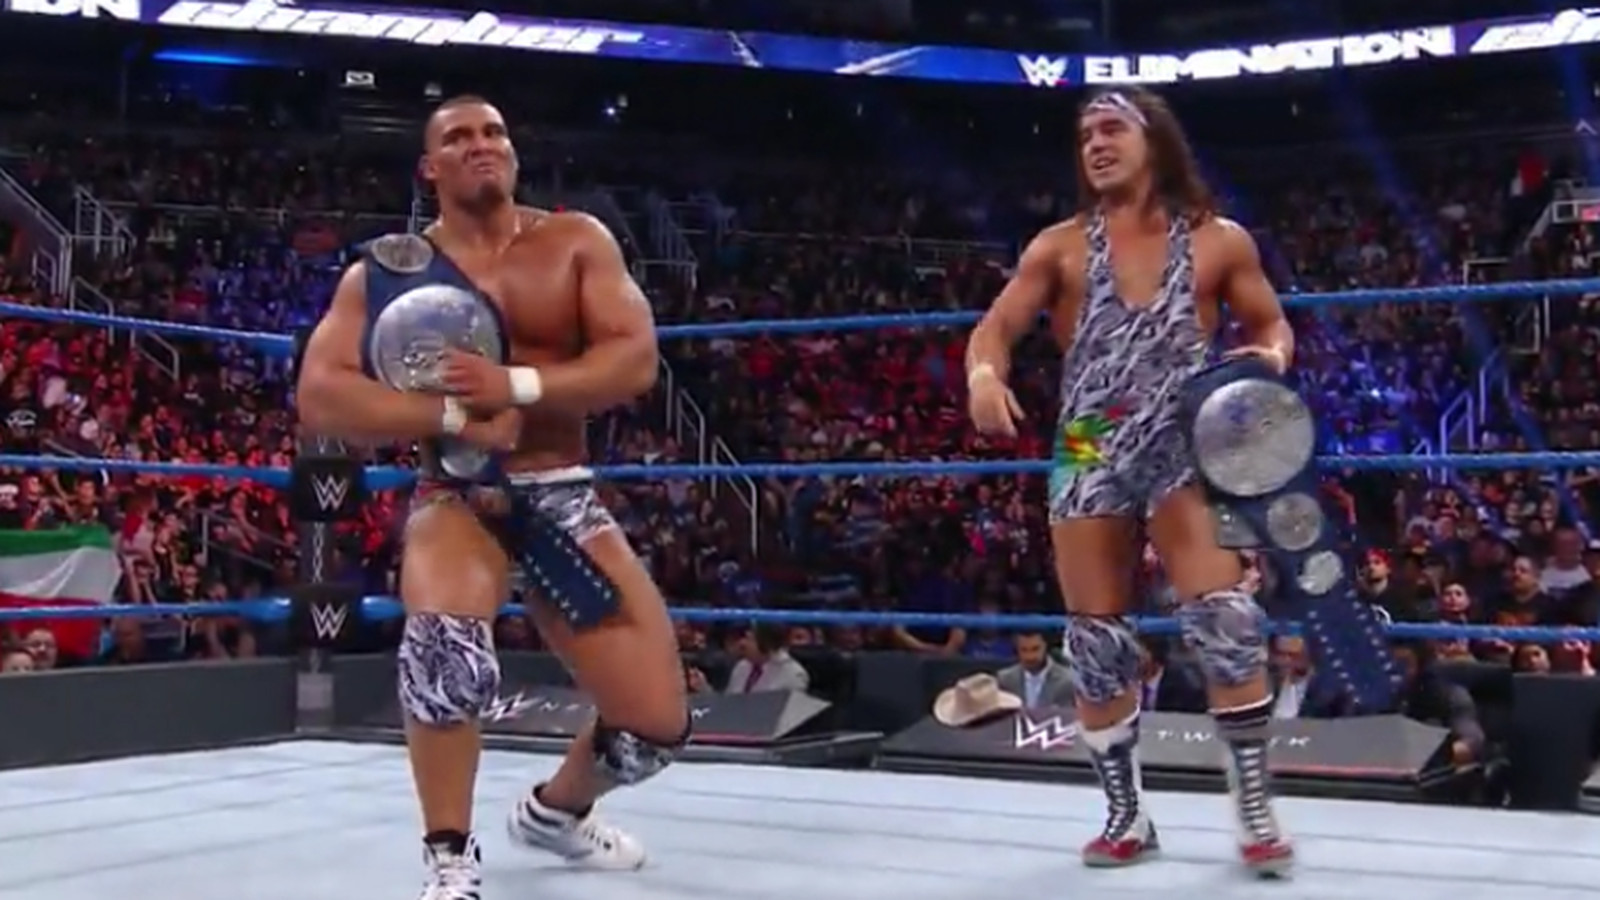 WWE Elimination Chamber 2017 results: American Alpha retain tag team titles